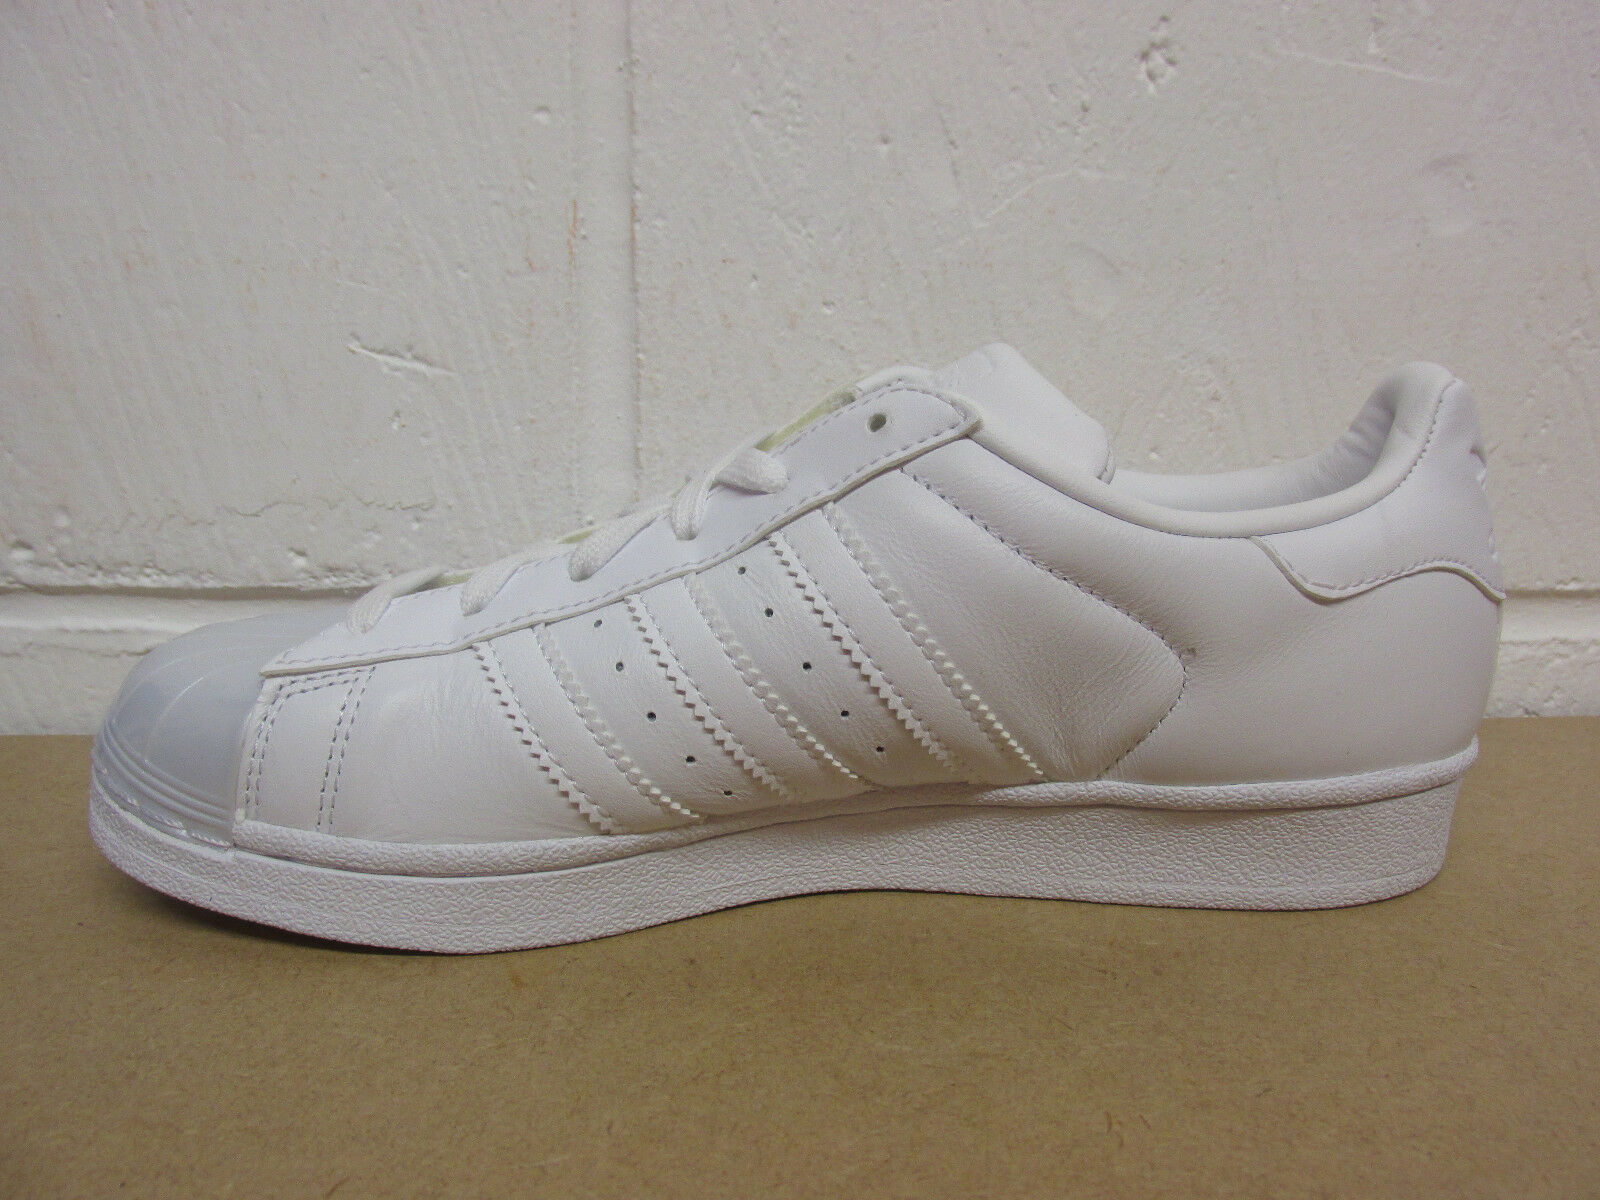 Adidas Originals Superstar Trainers Glossy Toe W Damenschuhe Trainers Superstar BB0683 Sneakers Schuhes d70355